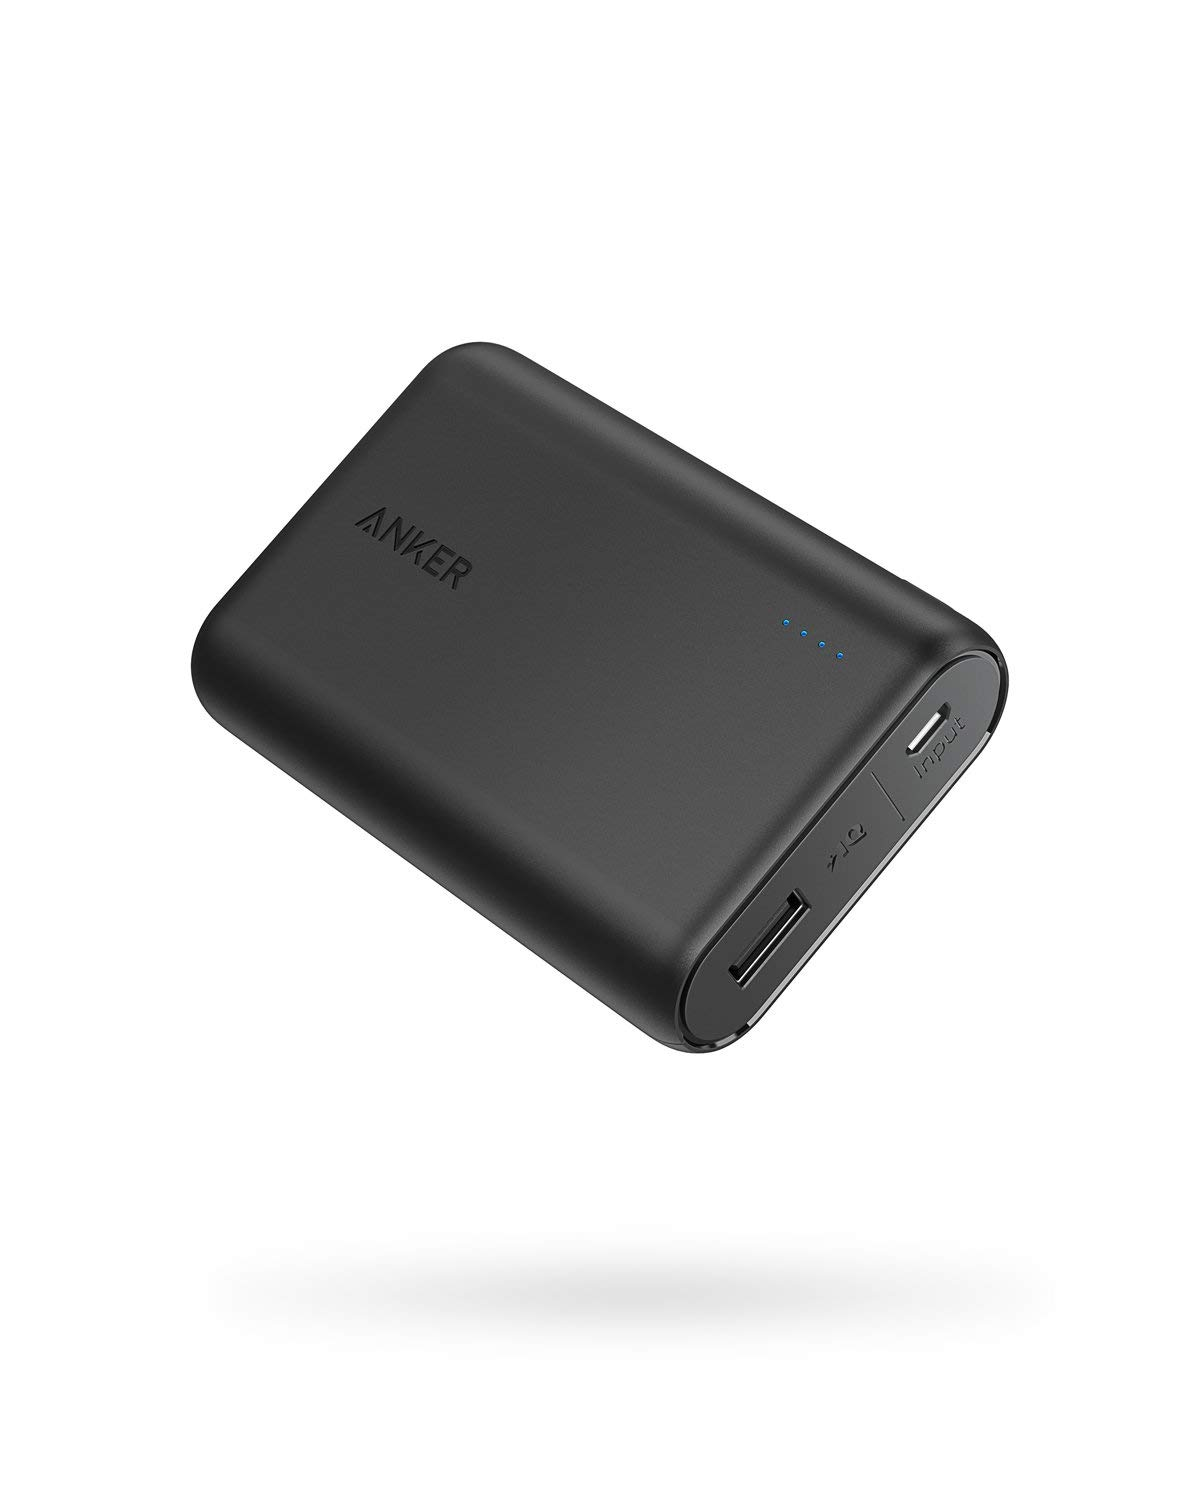 anker-powercore-charging-block.jpg